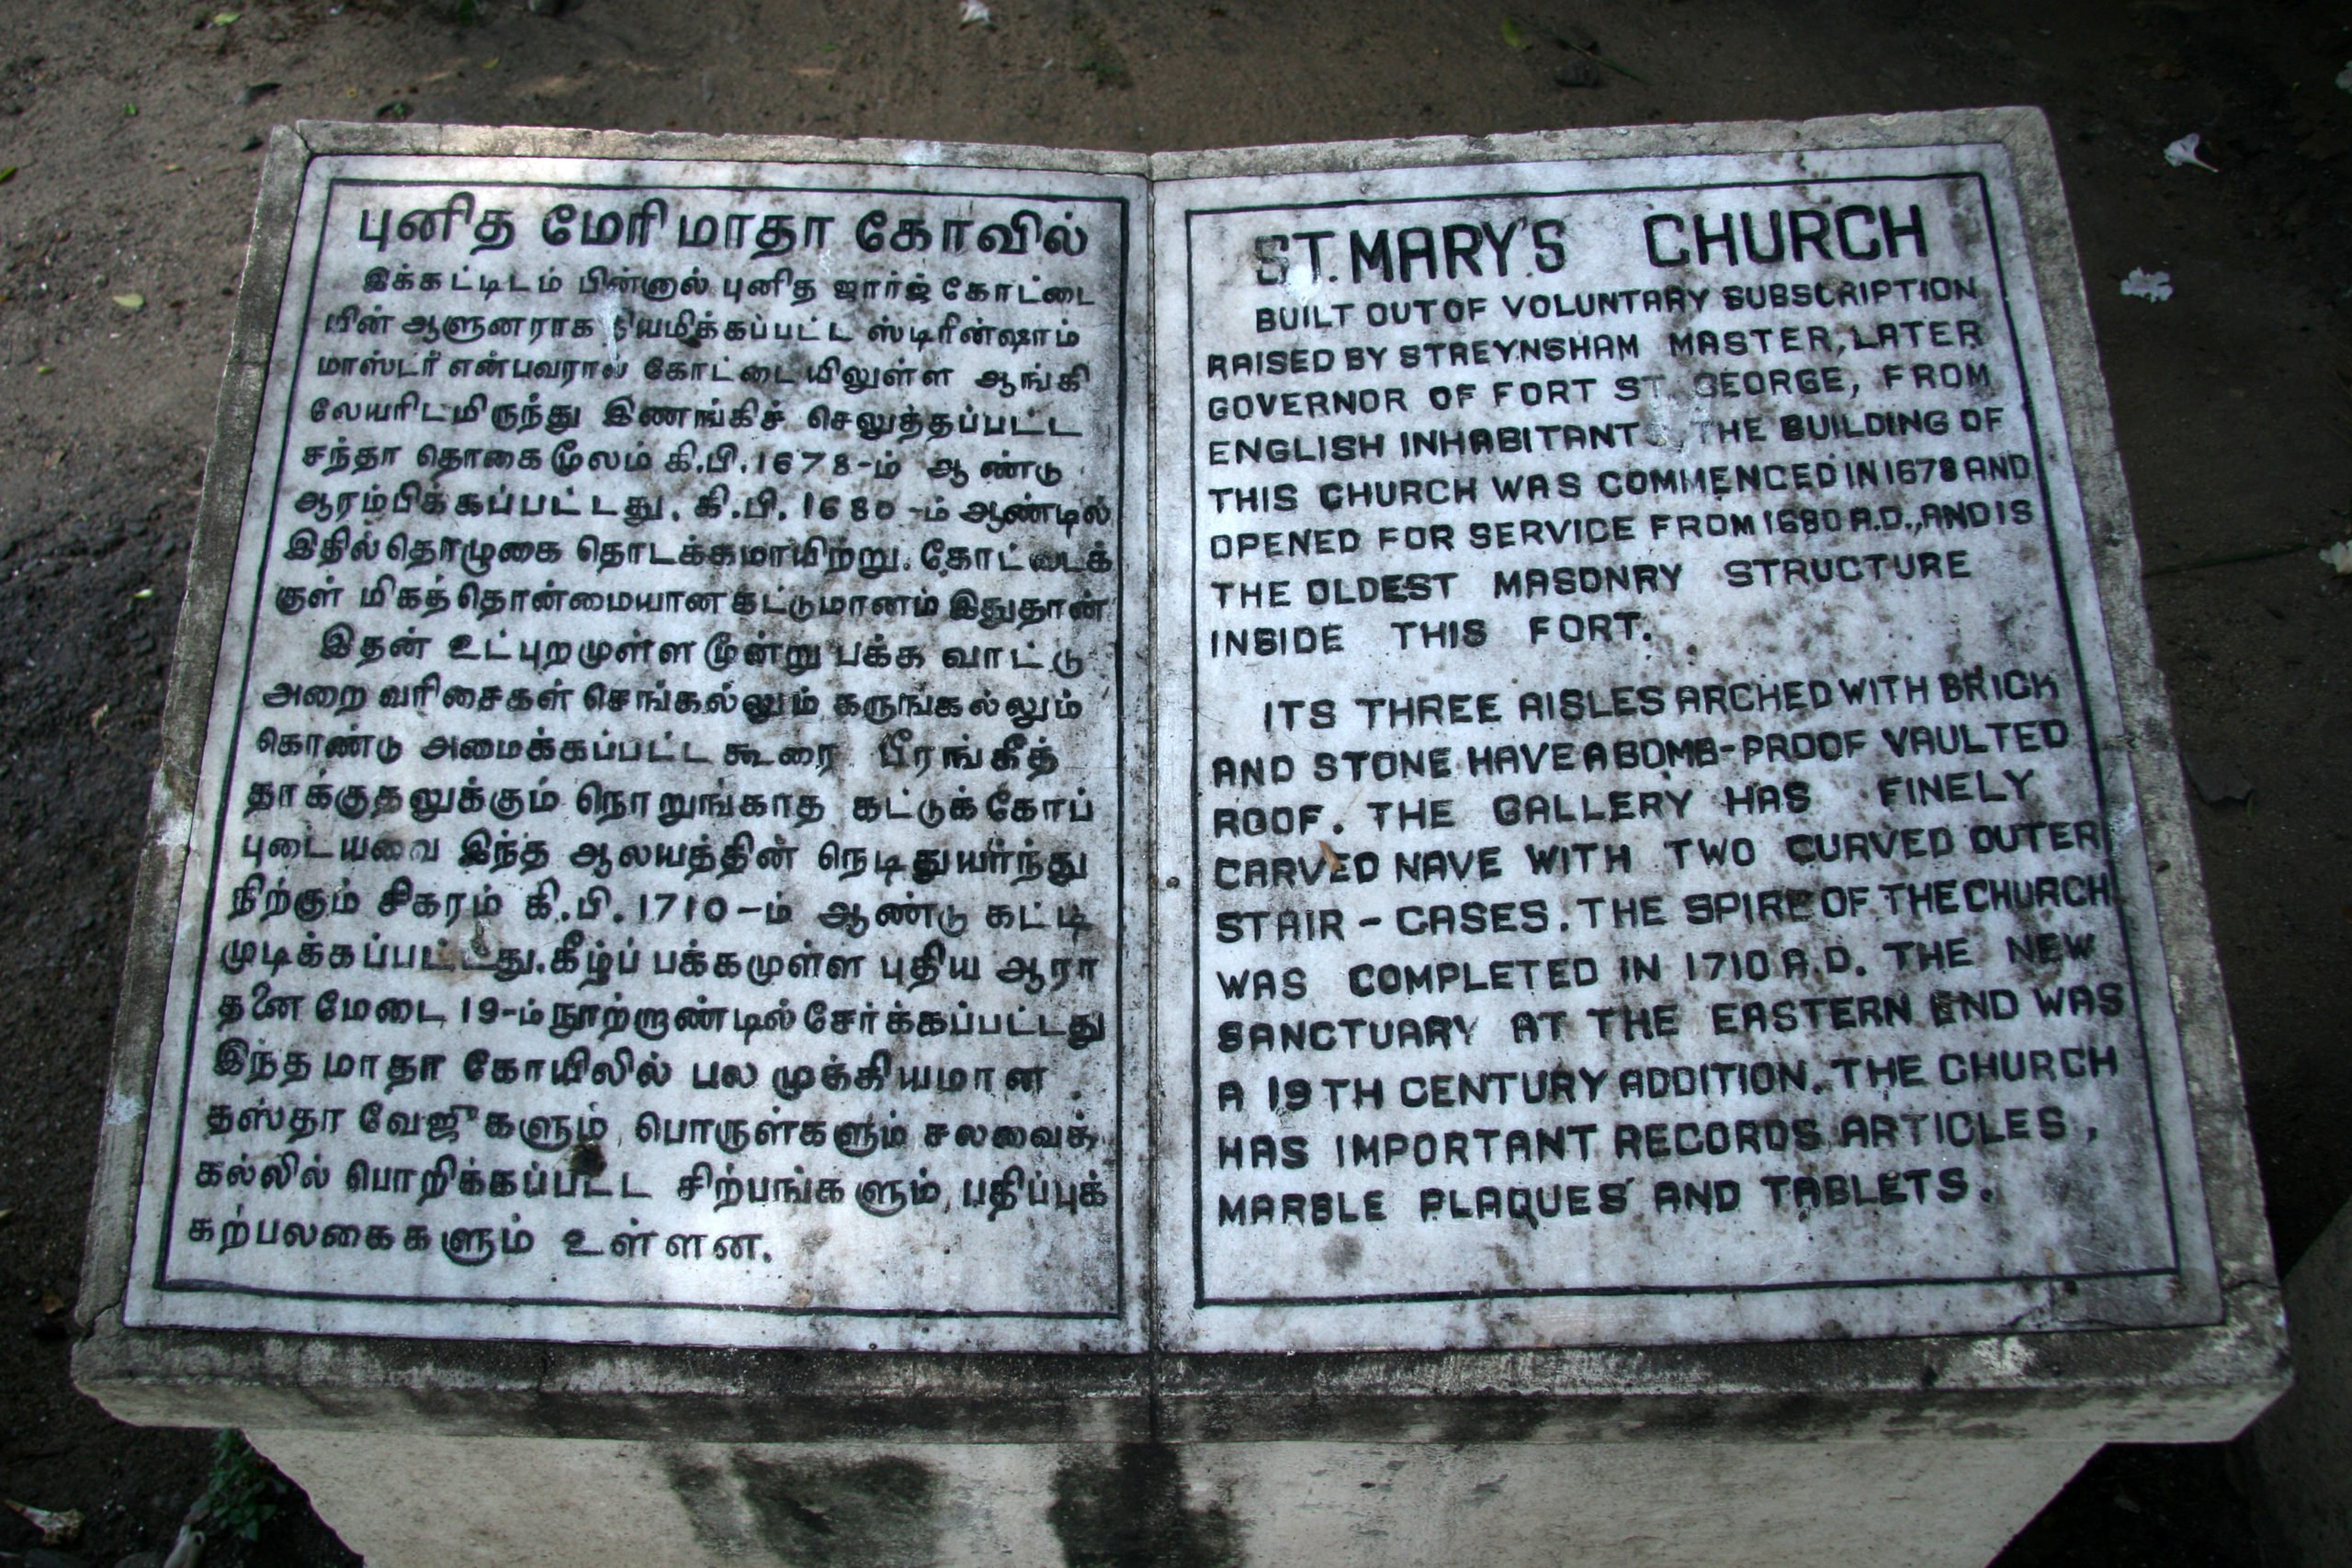 Visit St Mary's Church On Our Gems Of British Architecture Walking Tour In Chennai